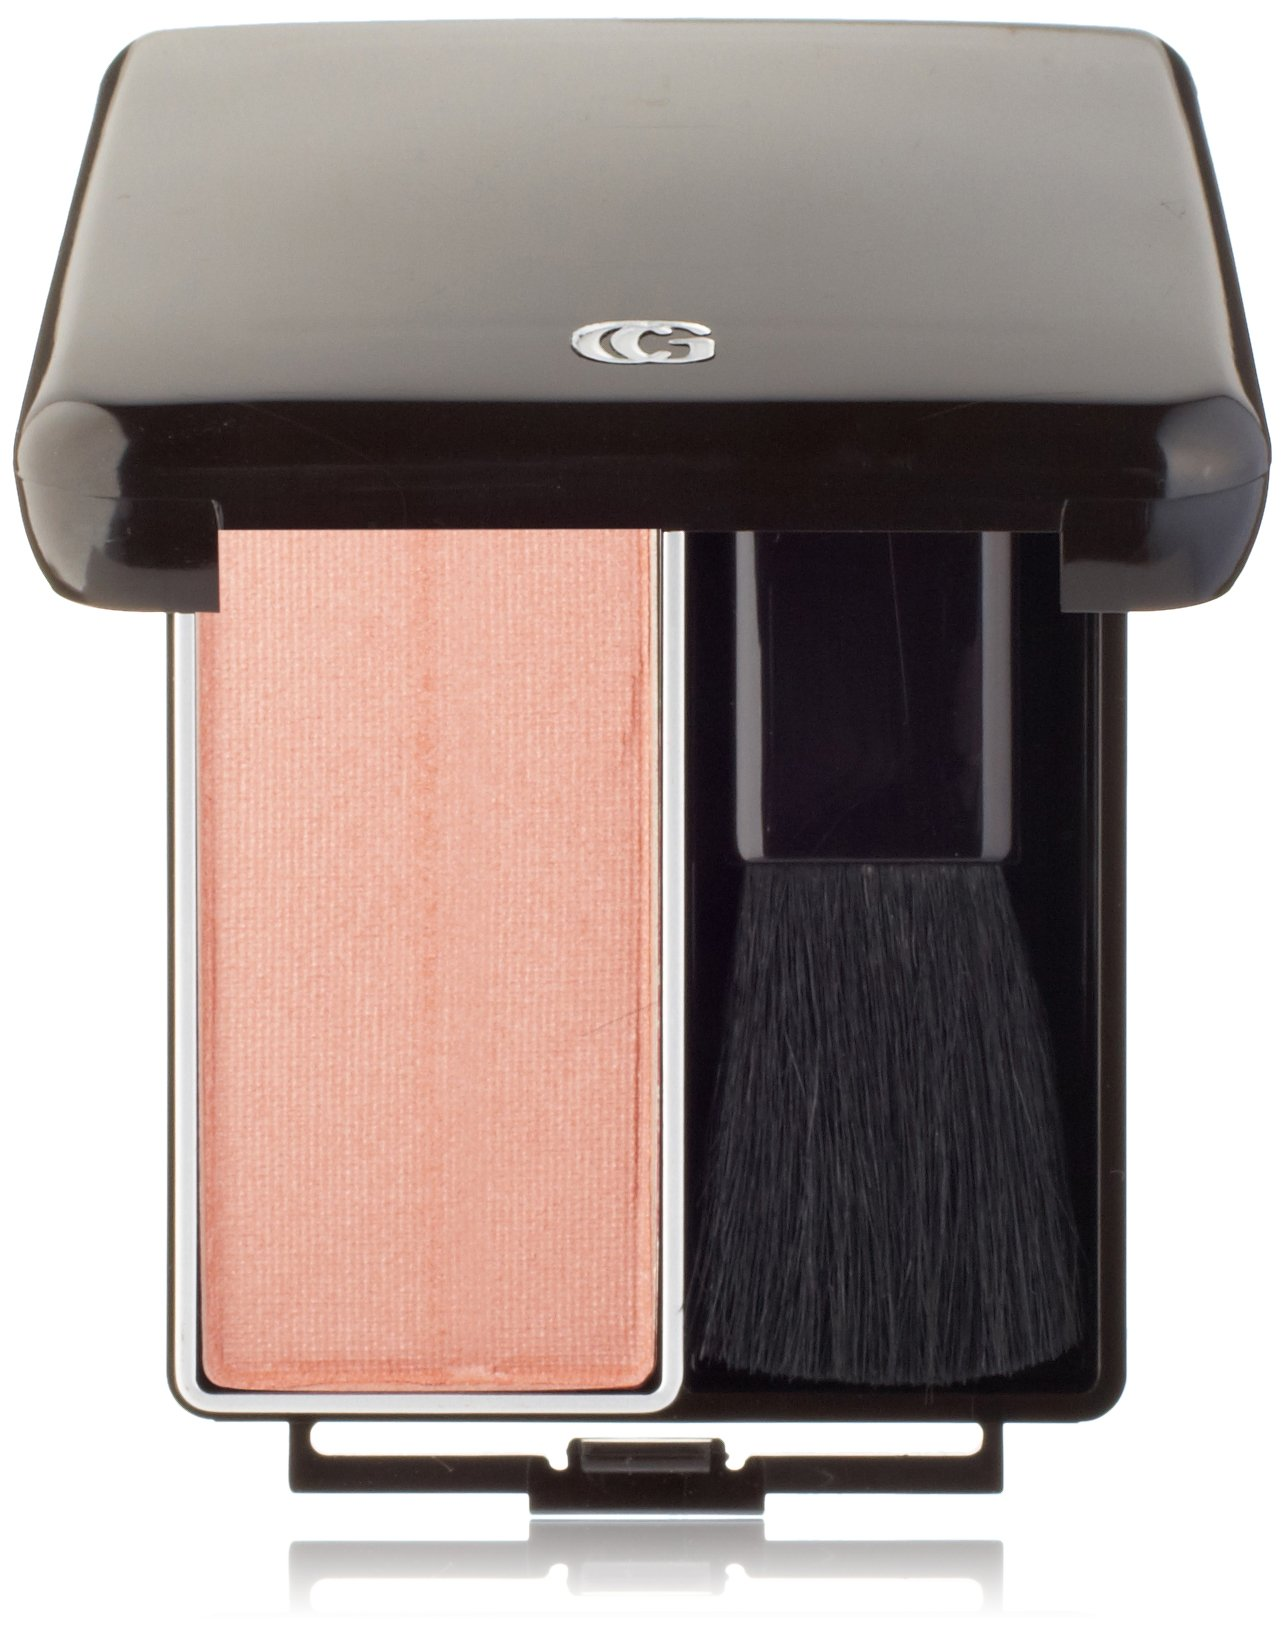 CoverGirl Classic Color Blush Soft Mink(N) 590, 0.27-Ounce Pan (Pack of 2)